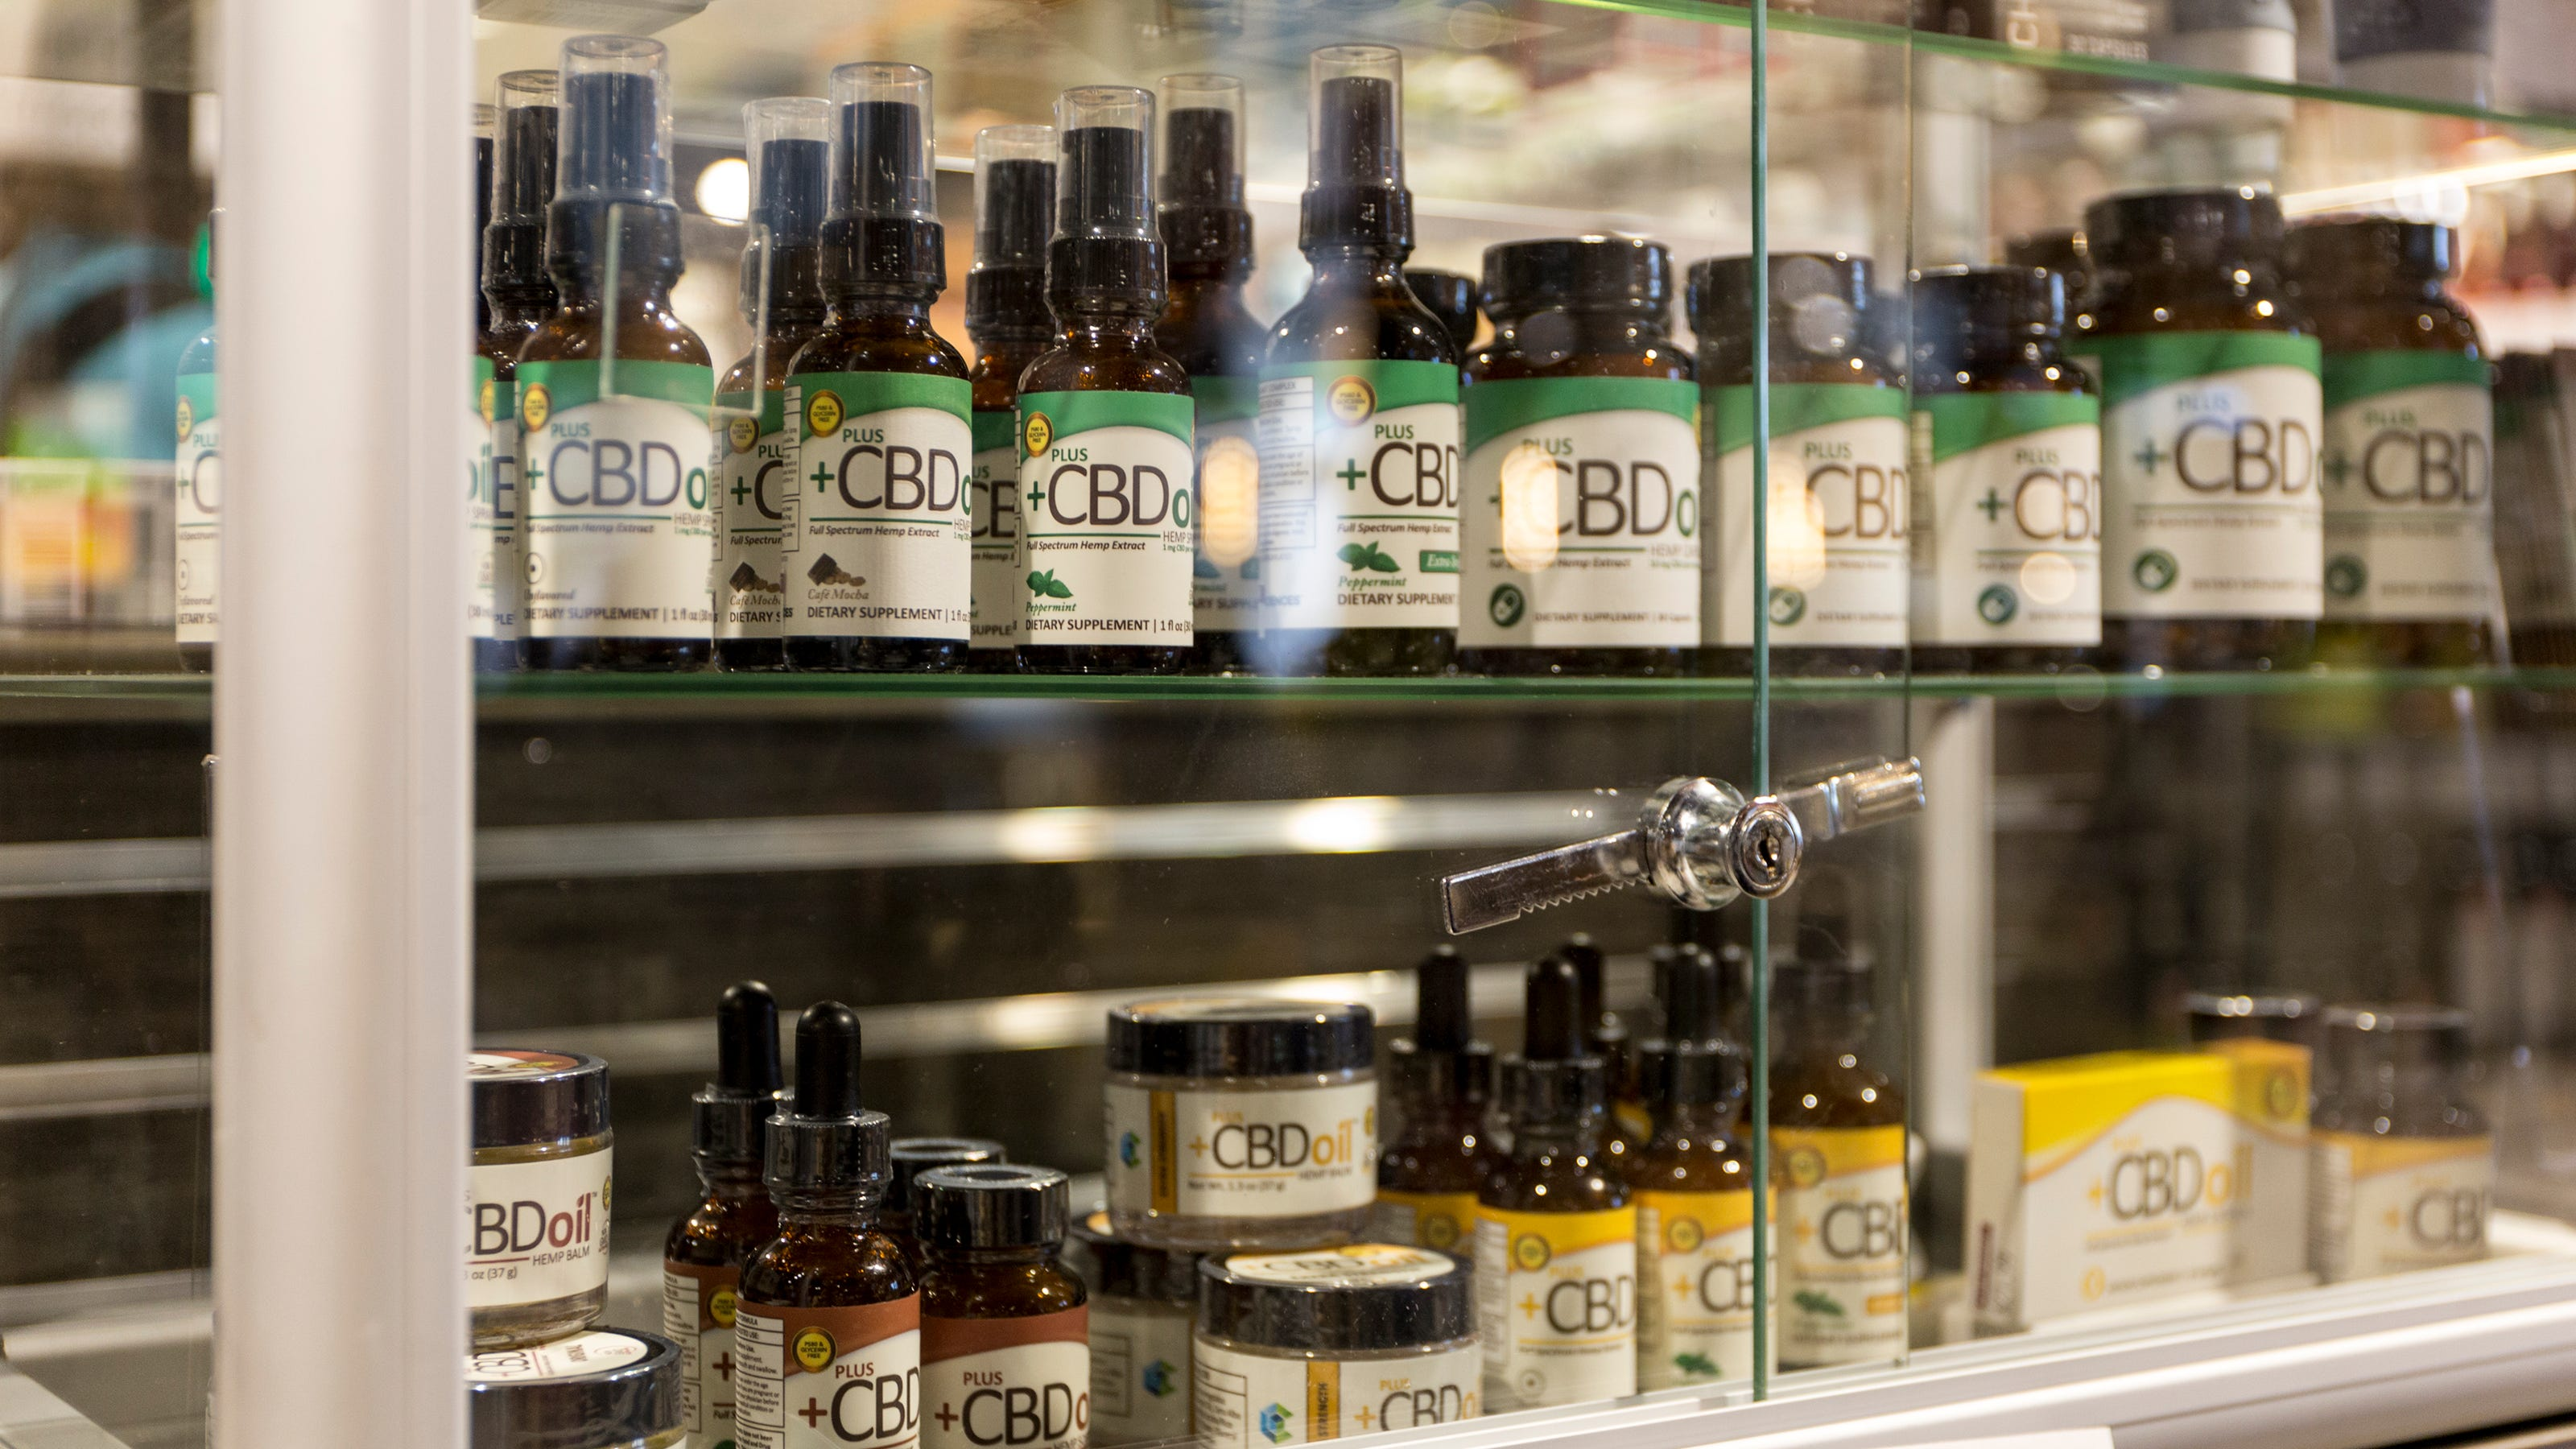 With CBD sales rising, here's what you should know before buying